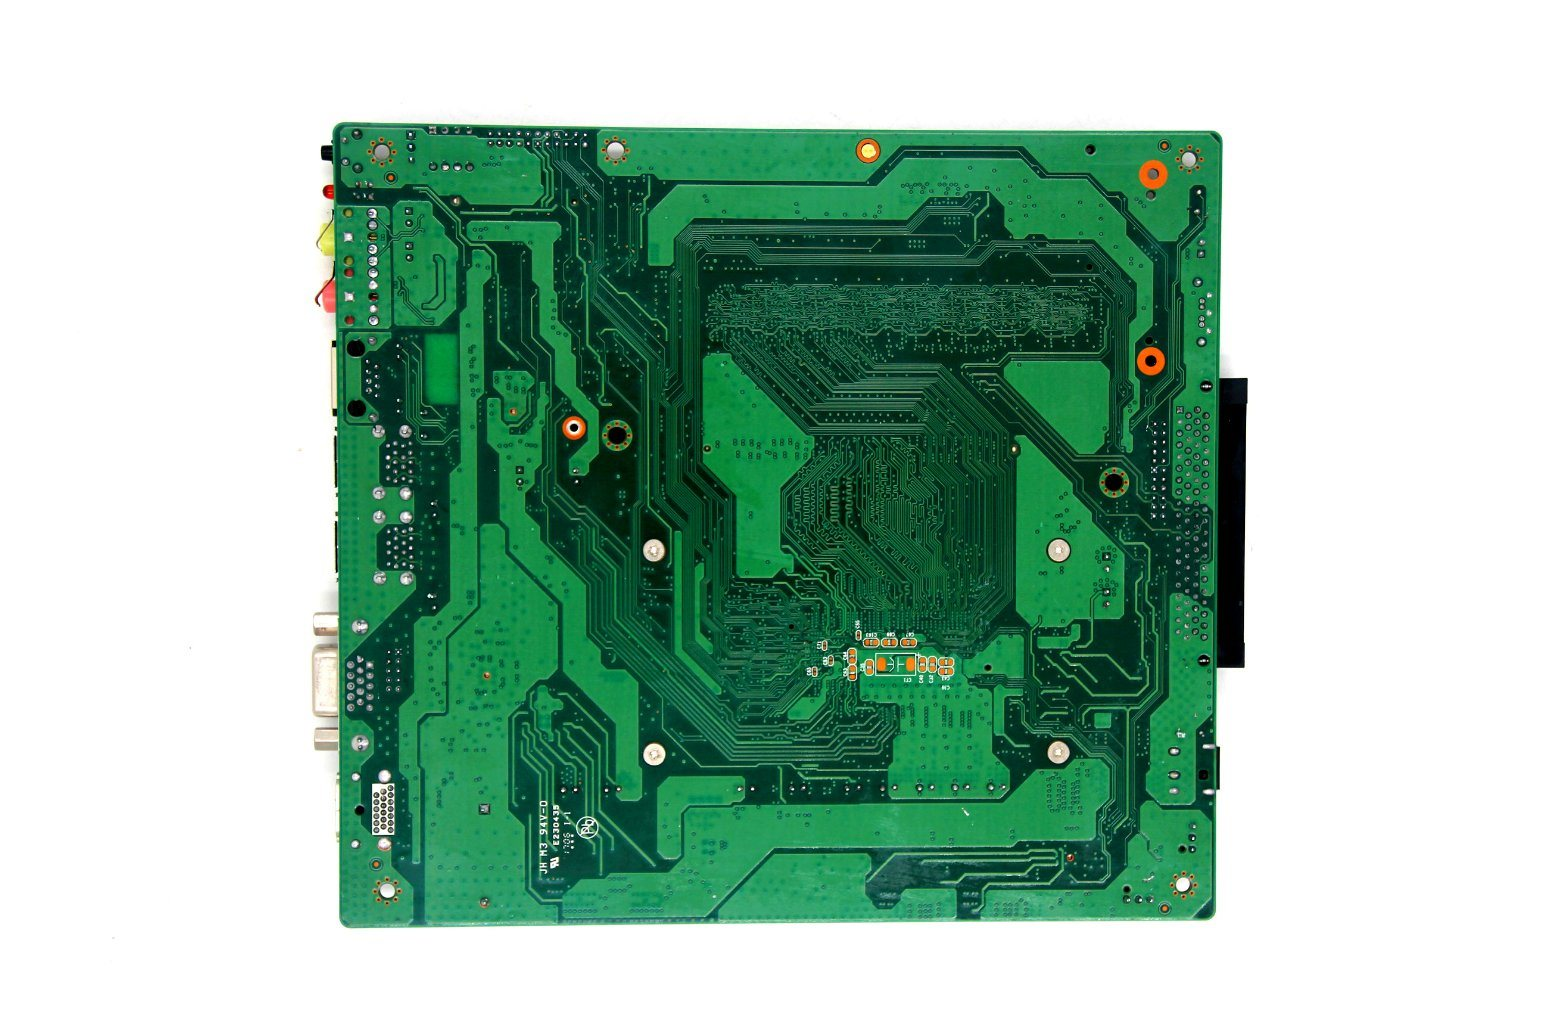 OEM Industrial OPS Computer Mini Itx Motherboard with I3-4010u Processor